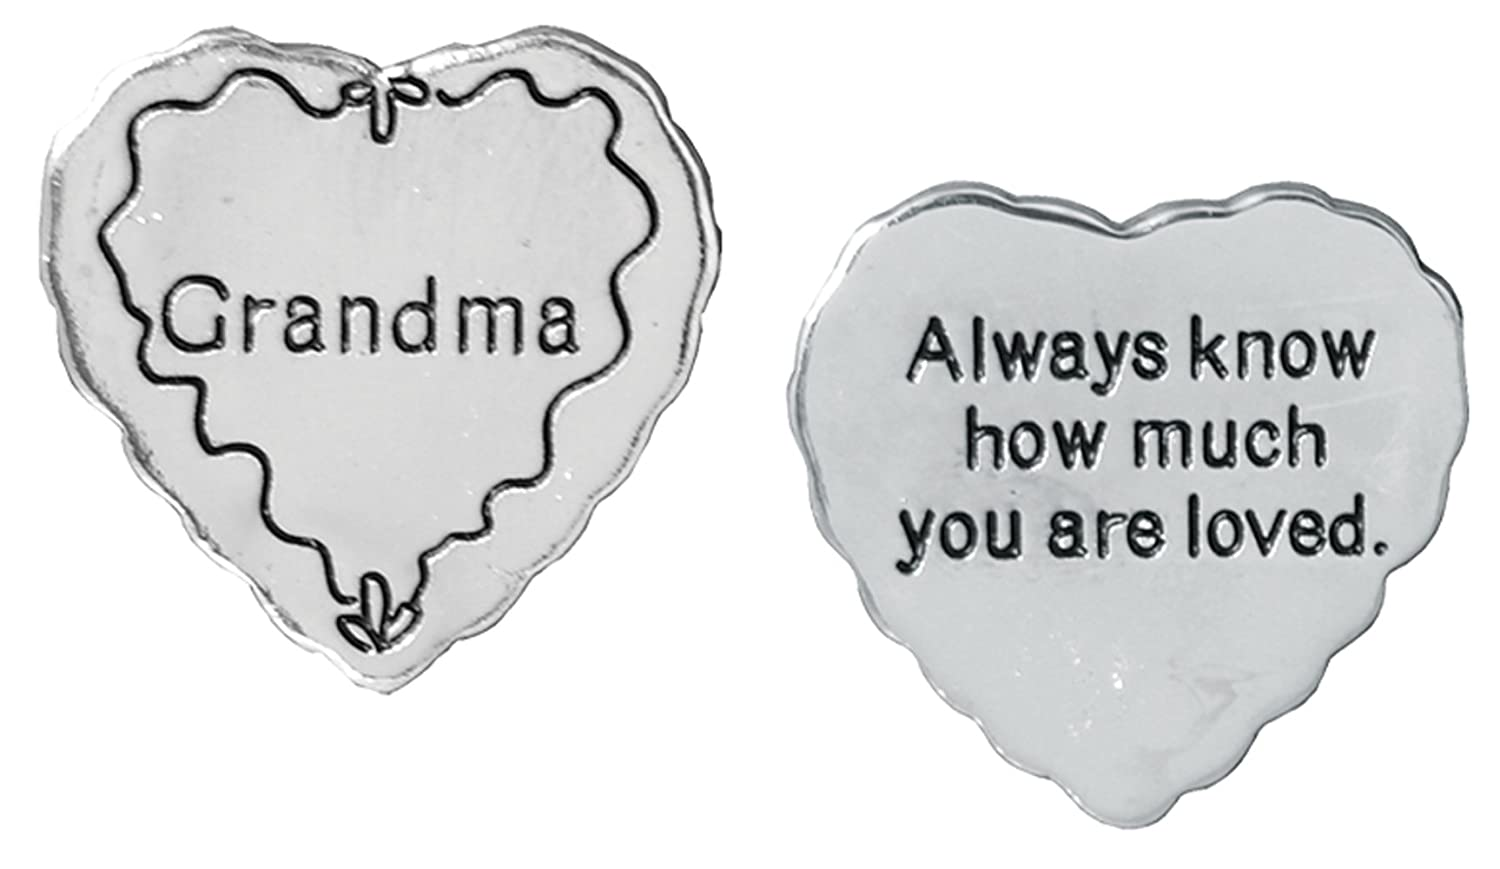 Pocket Token Charm Gift for Grandma - Always Know How Much You Are Loved - Heart Shaped Engraved Metal - 1.25 Inch